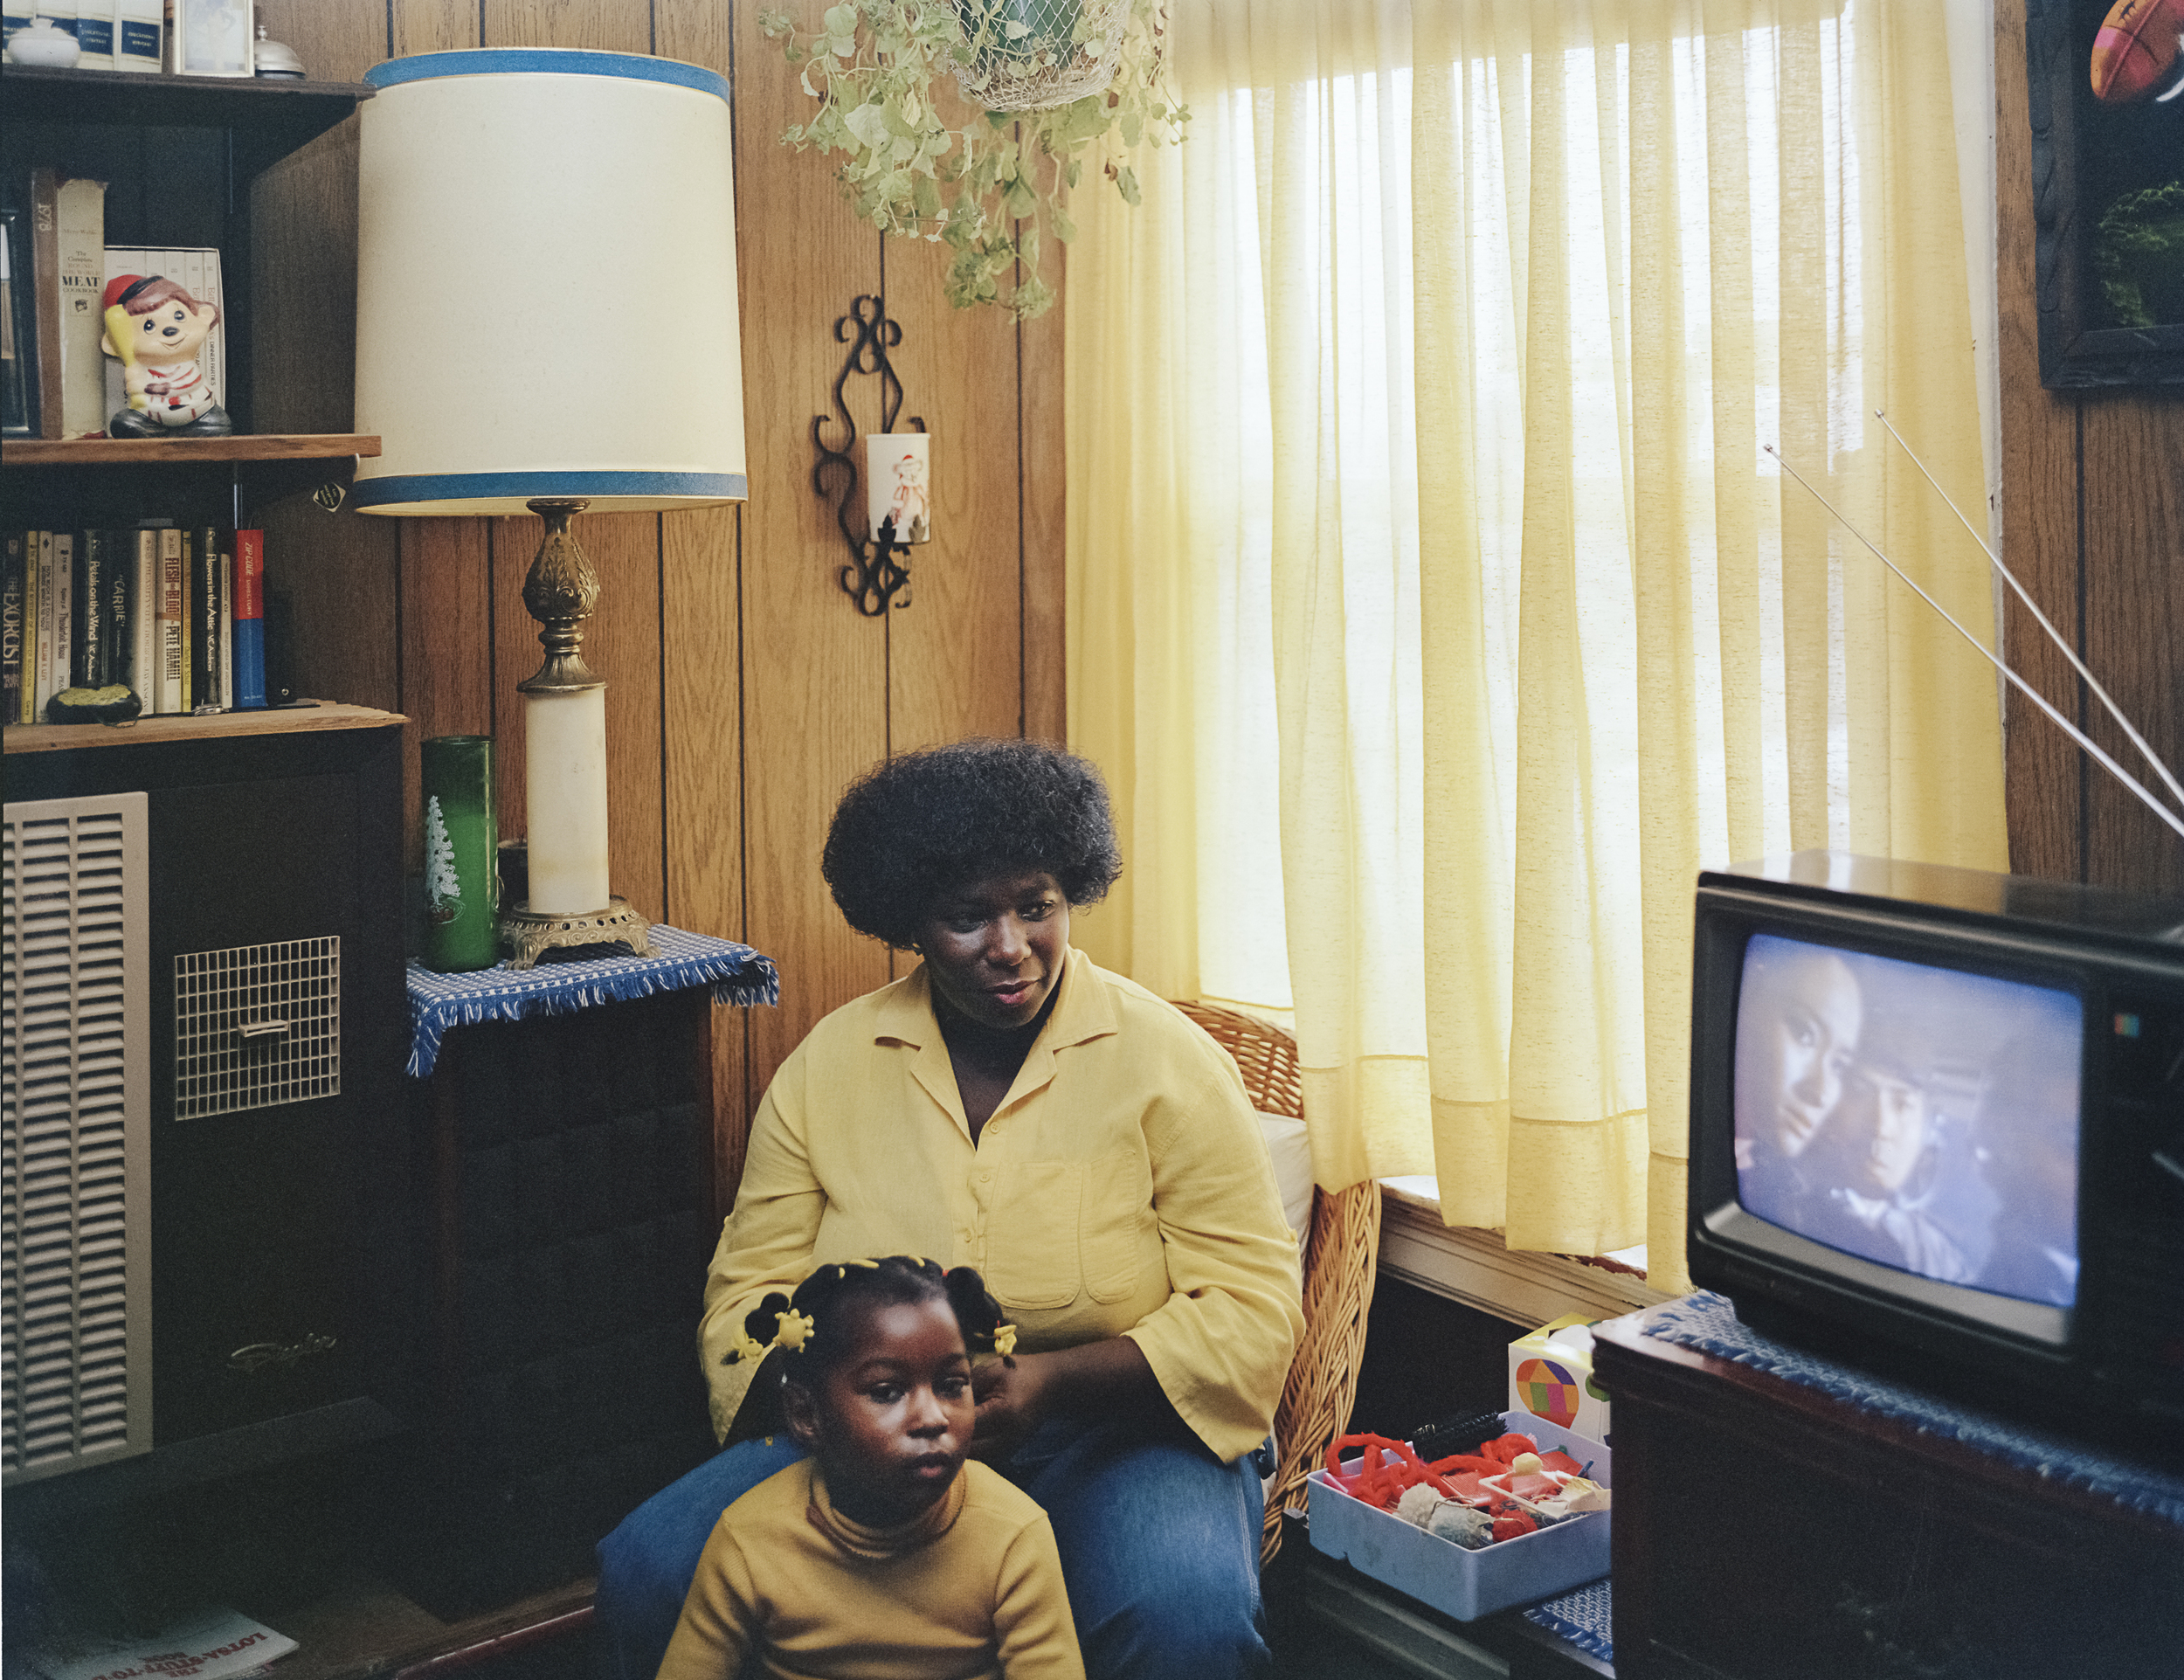 JANET DELANEY Bobbie Washington and her daughter Ayana, 28 Langton Street, 1982 Archival Pigment Print, 2016 16 x 20 inches, edition of 5 20 x 24 inches, edition of 2 30 x 40 inches, edition of 2